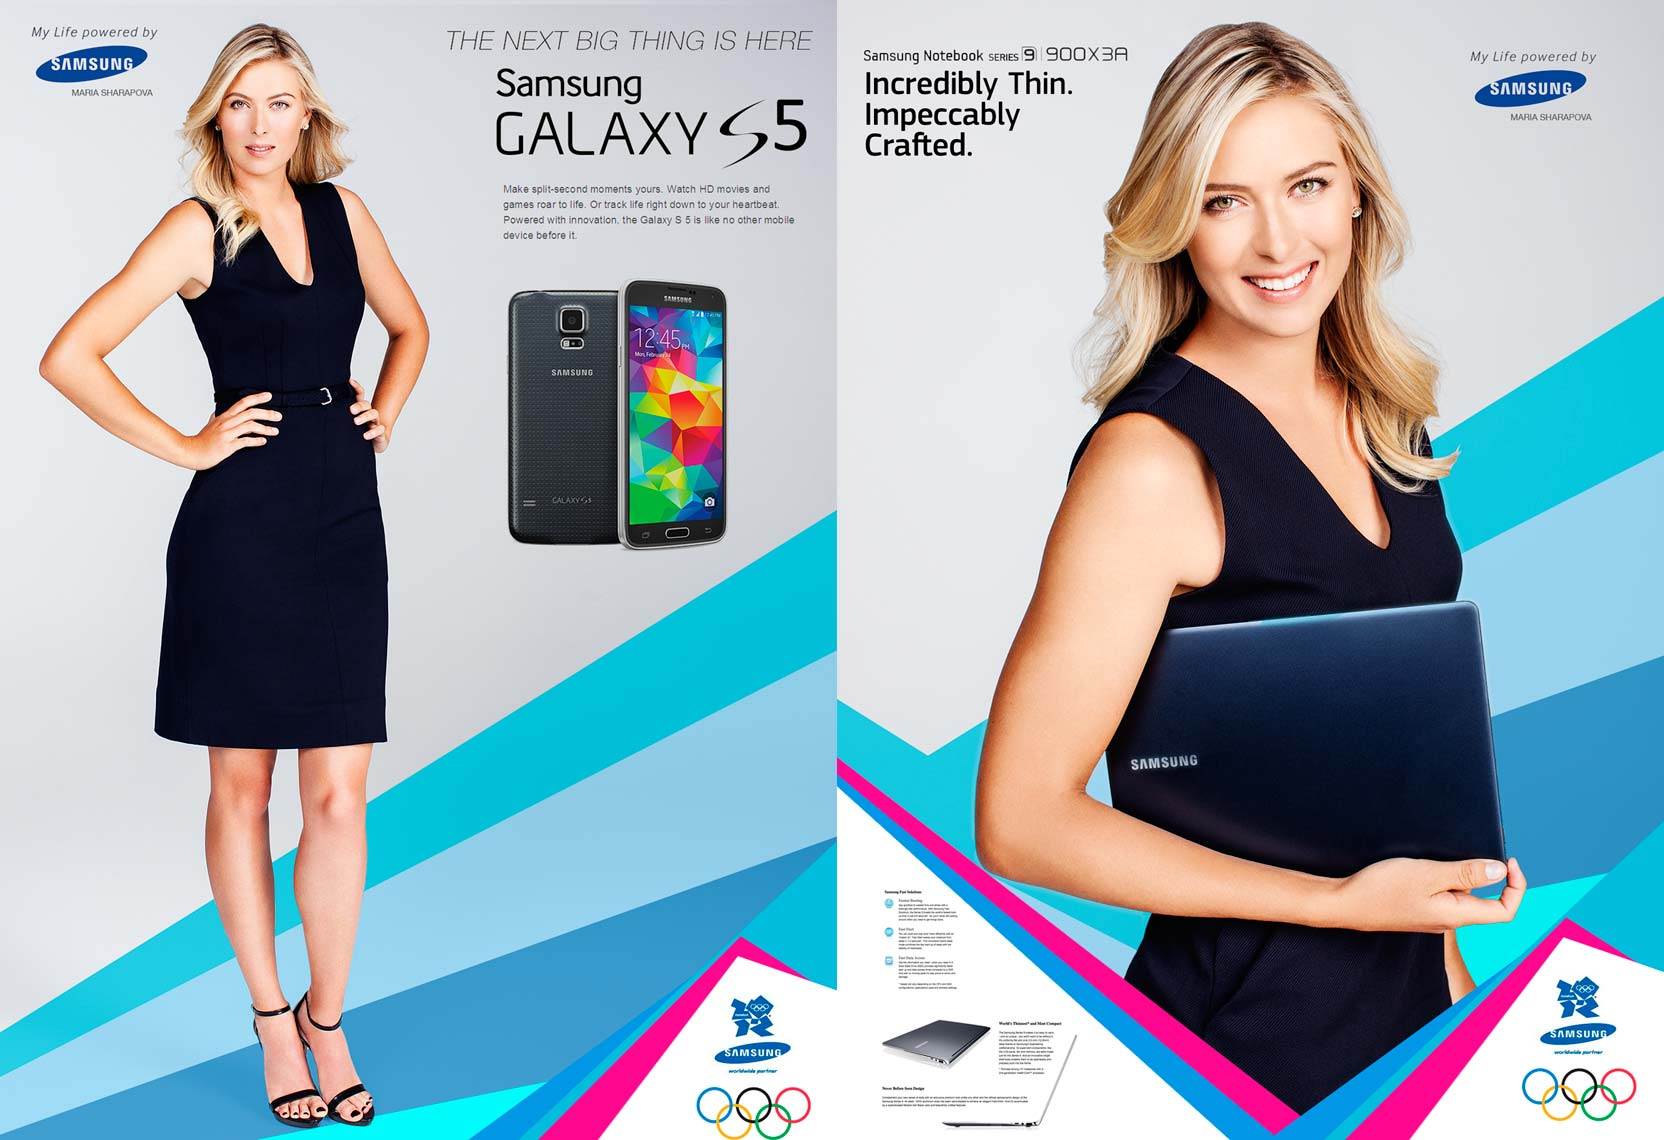 Chris-Hunt-Photography-Advertising-Maria-Sharapova-Samsung-429